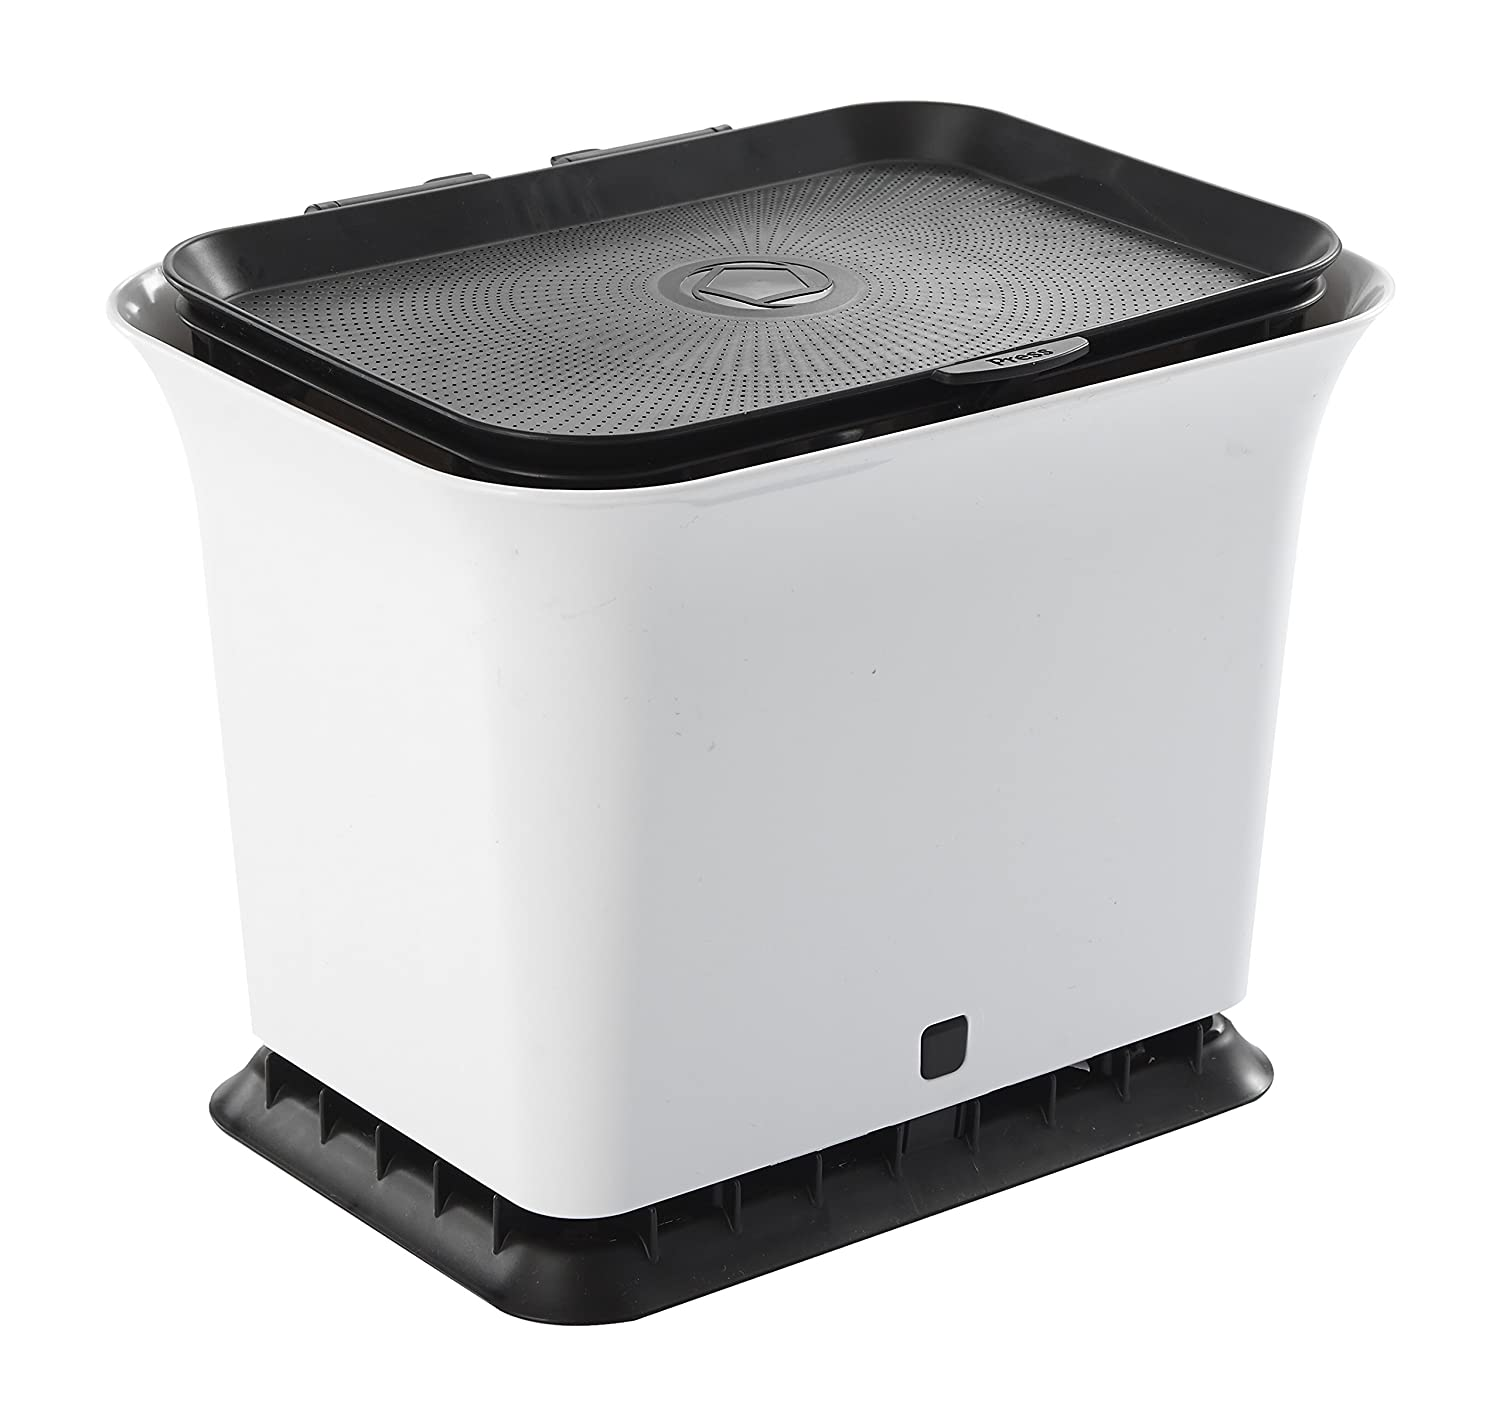 Full Circle Fresh Air Odor-Free Kitchen Compost Bin, Black and White